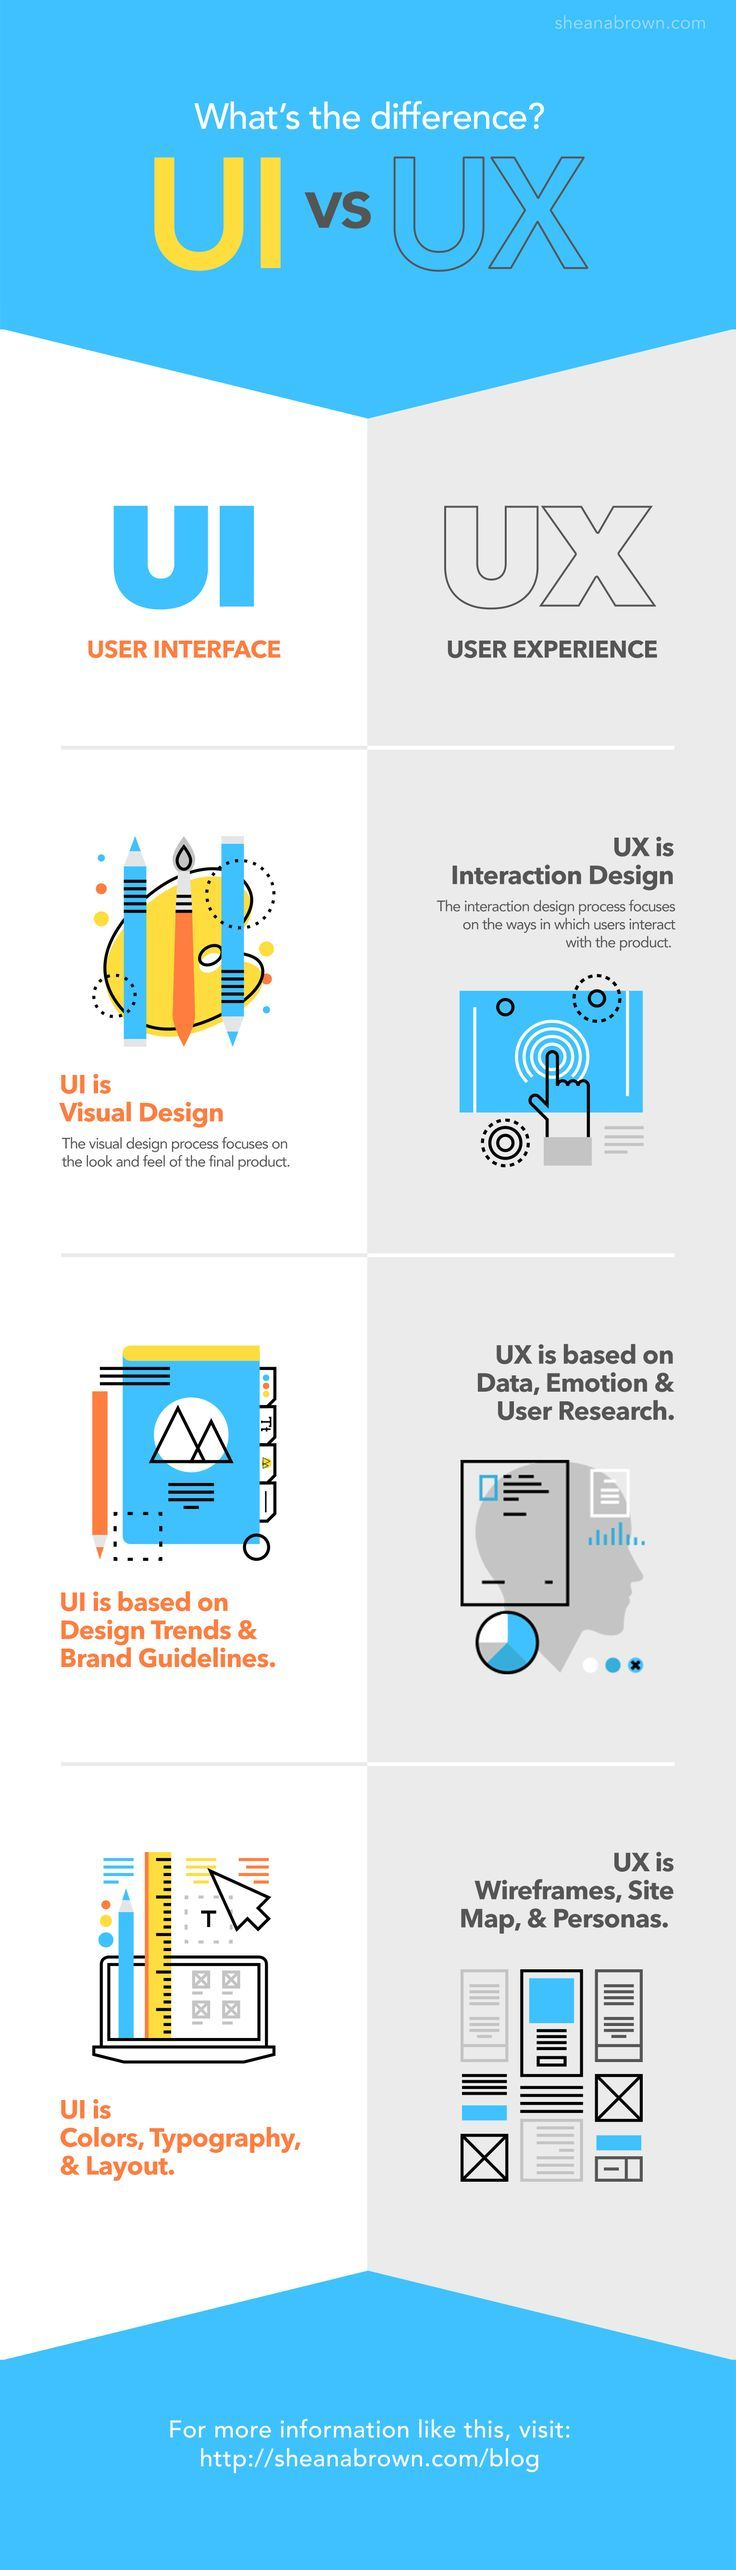 UI vs UX - Knowing the Difference Between UI and UX Infographic. If you like UX, design, or design thinking, check out theuxblog.com podcast https://itunes.apple.com/us/podcast/ux-blog-user-experience-design/id1127946001?mt=2